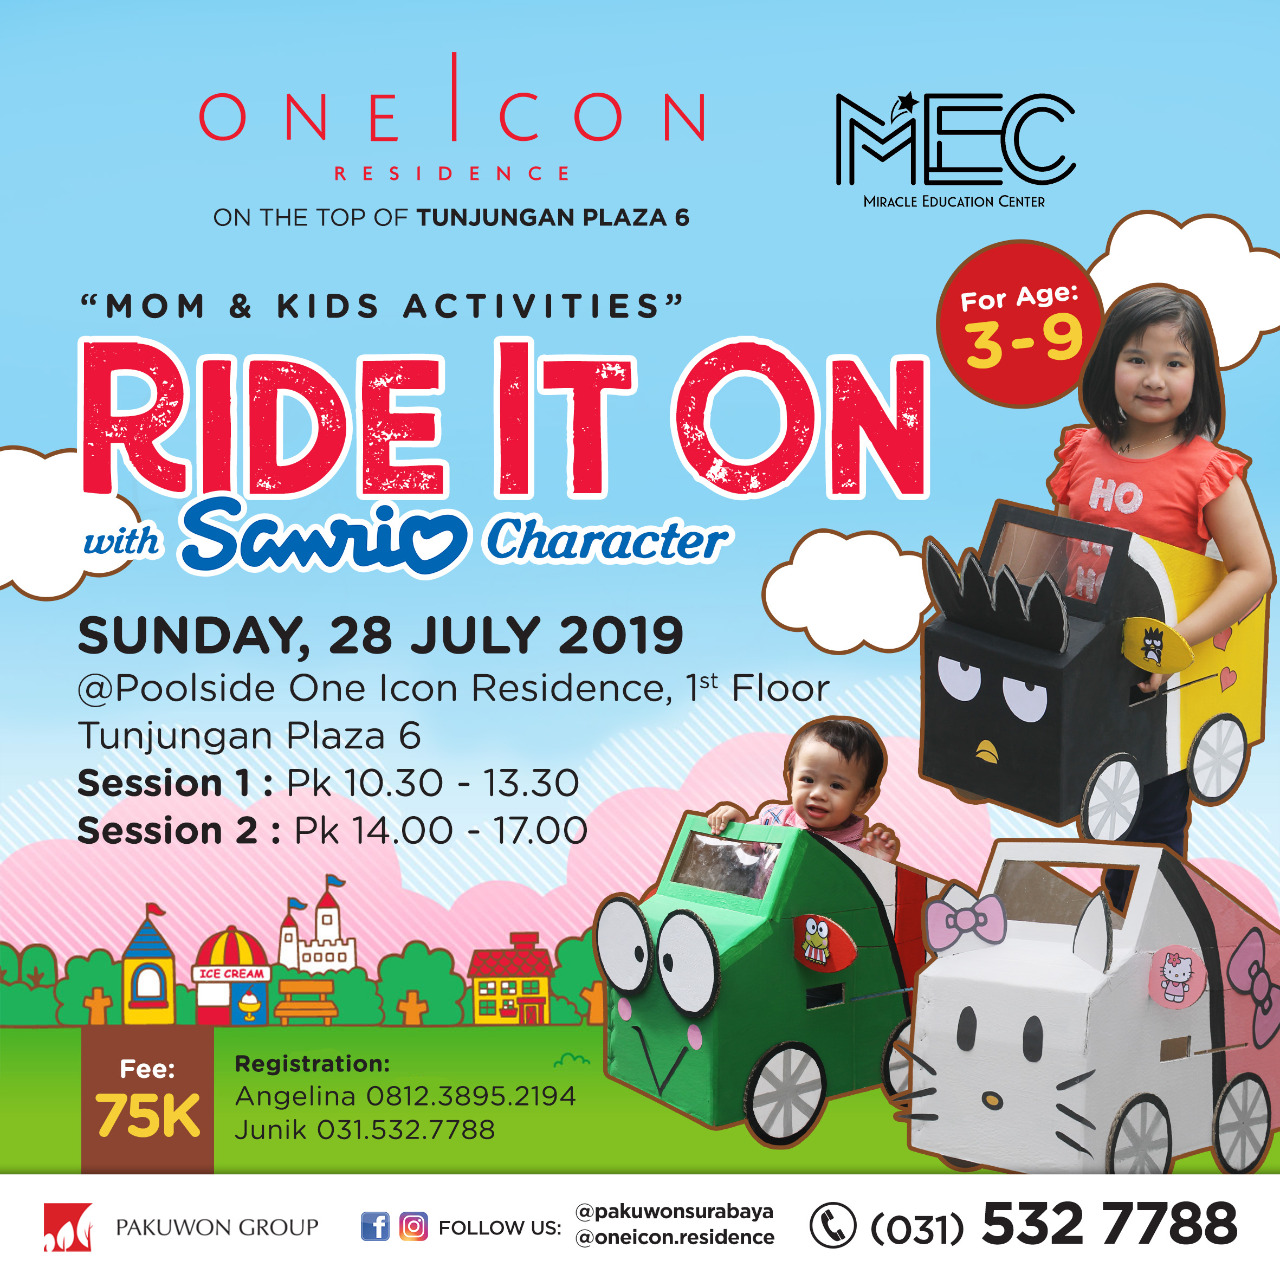 Mom & Kids Activities Ride it On with Sanrio Character at One Icon Residence